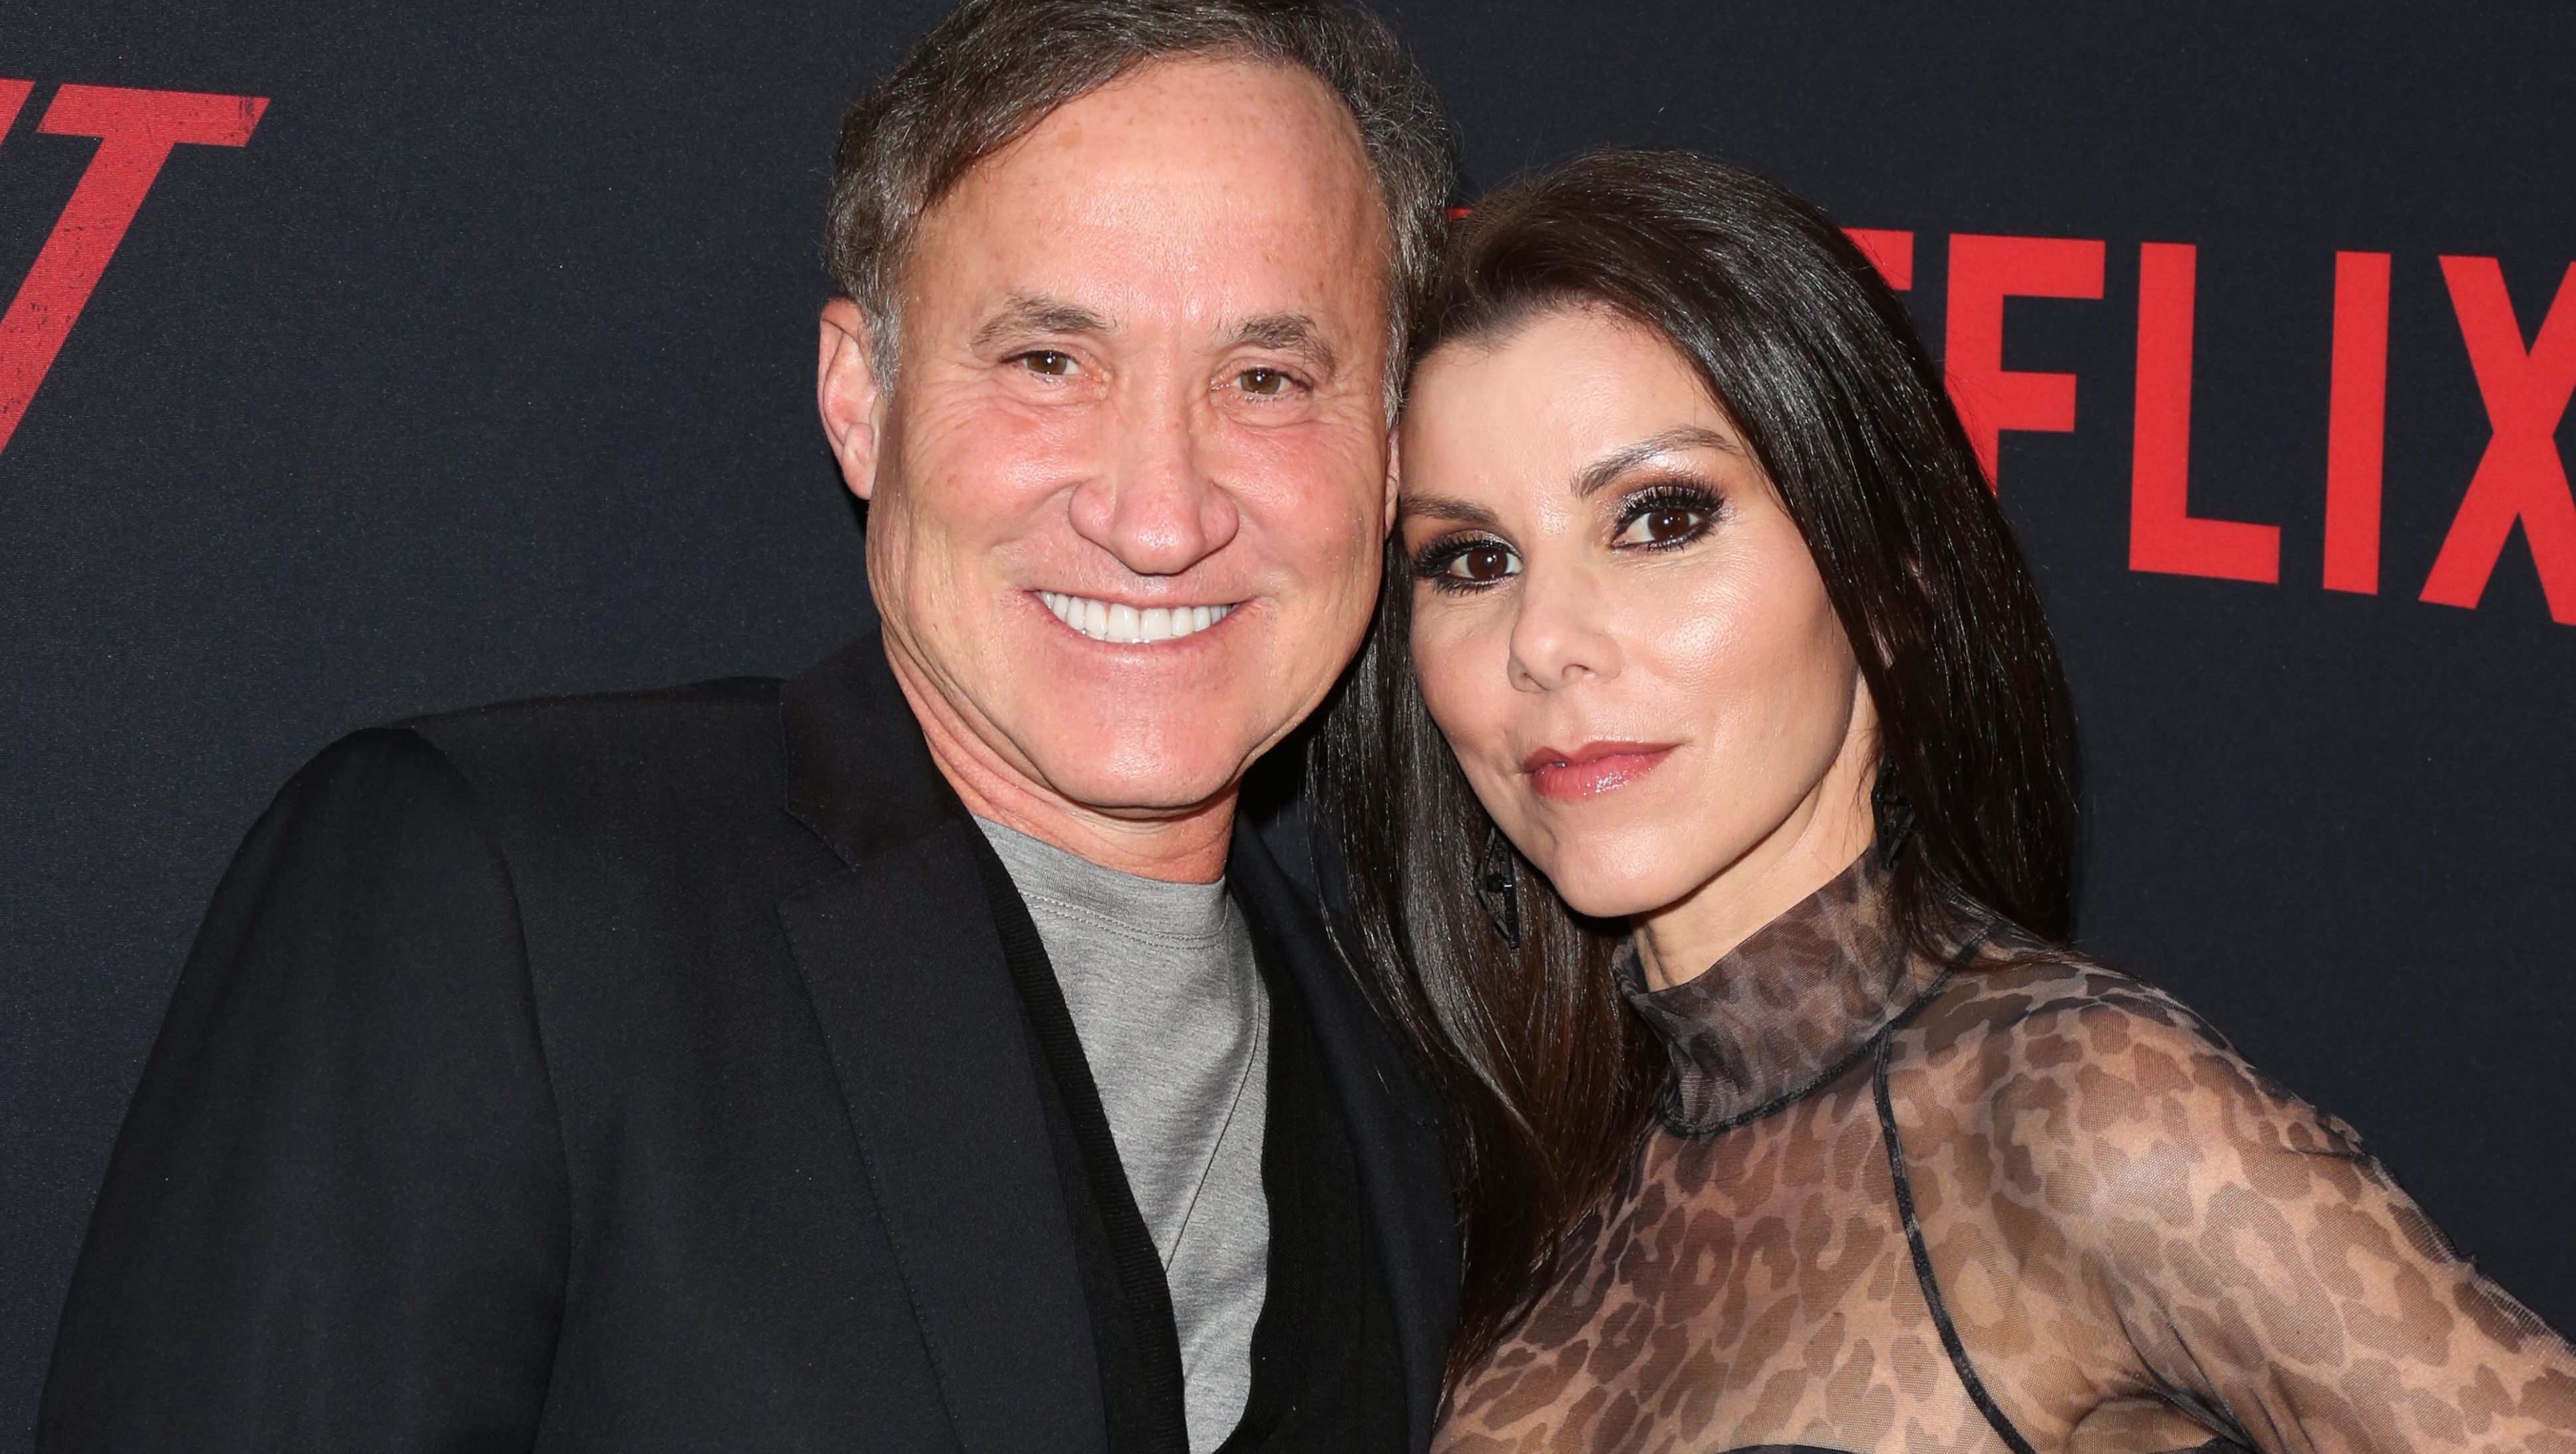 Dr. Terry Dubrow and Heather Dubrow attends a Netflix premiere.